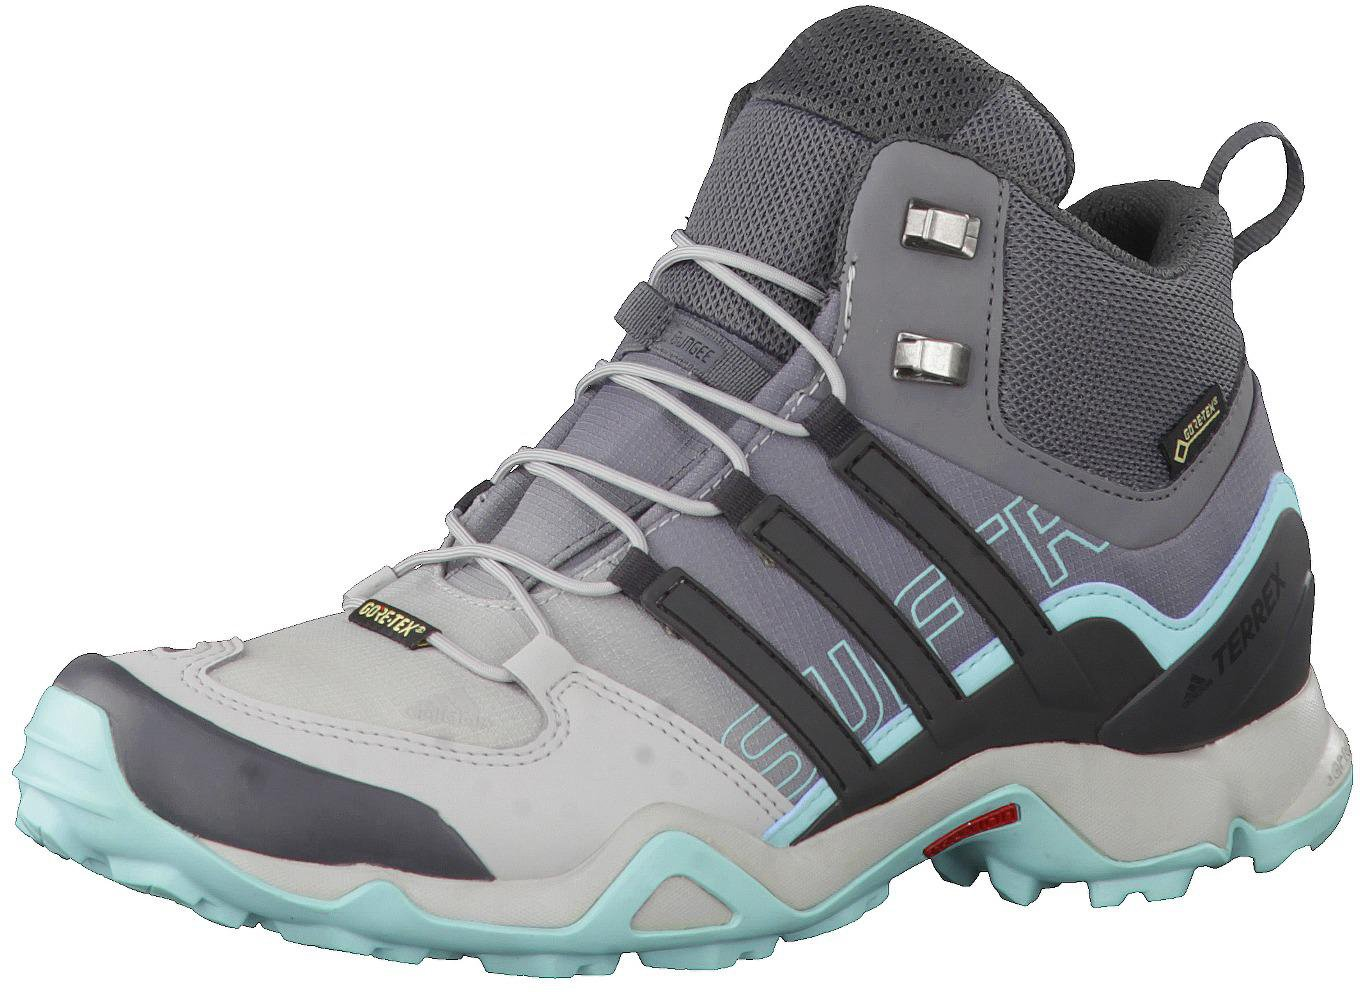 Adidas Terrex Swift R Mid GTX Outdoorschuhe Damen